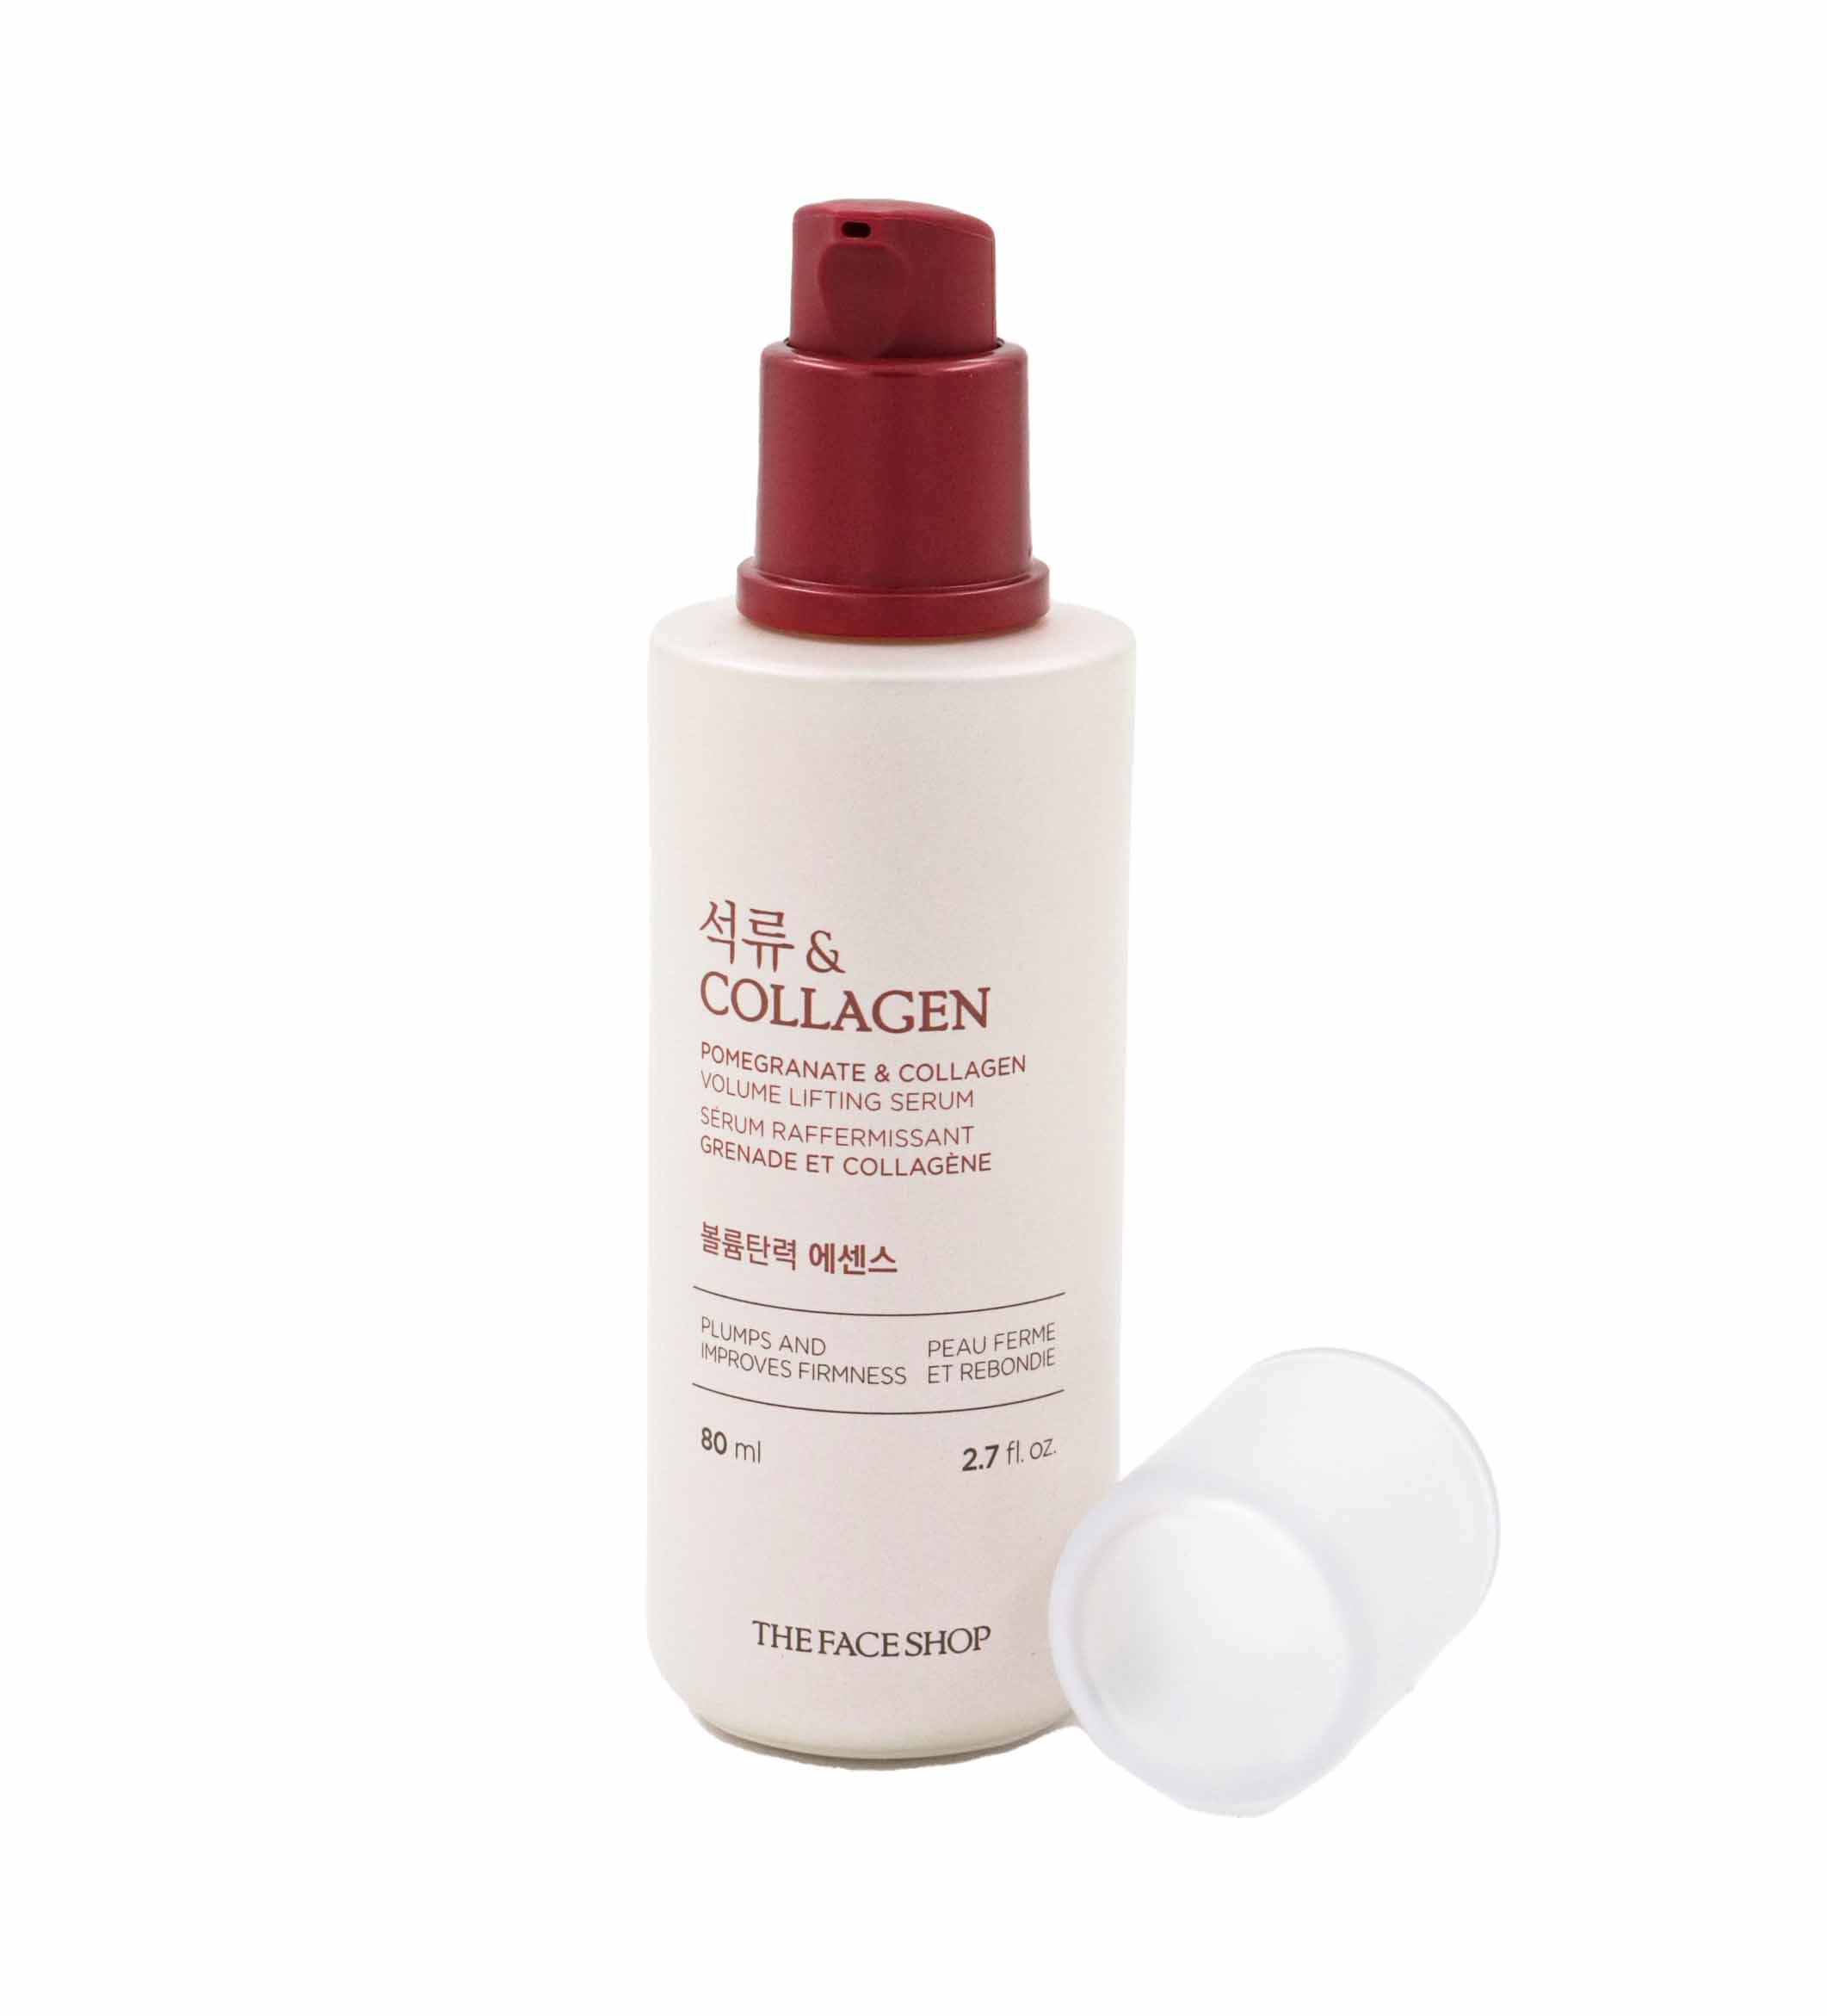 The Face Shop - Pomegranate and Collagen Volume Lifting Serum